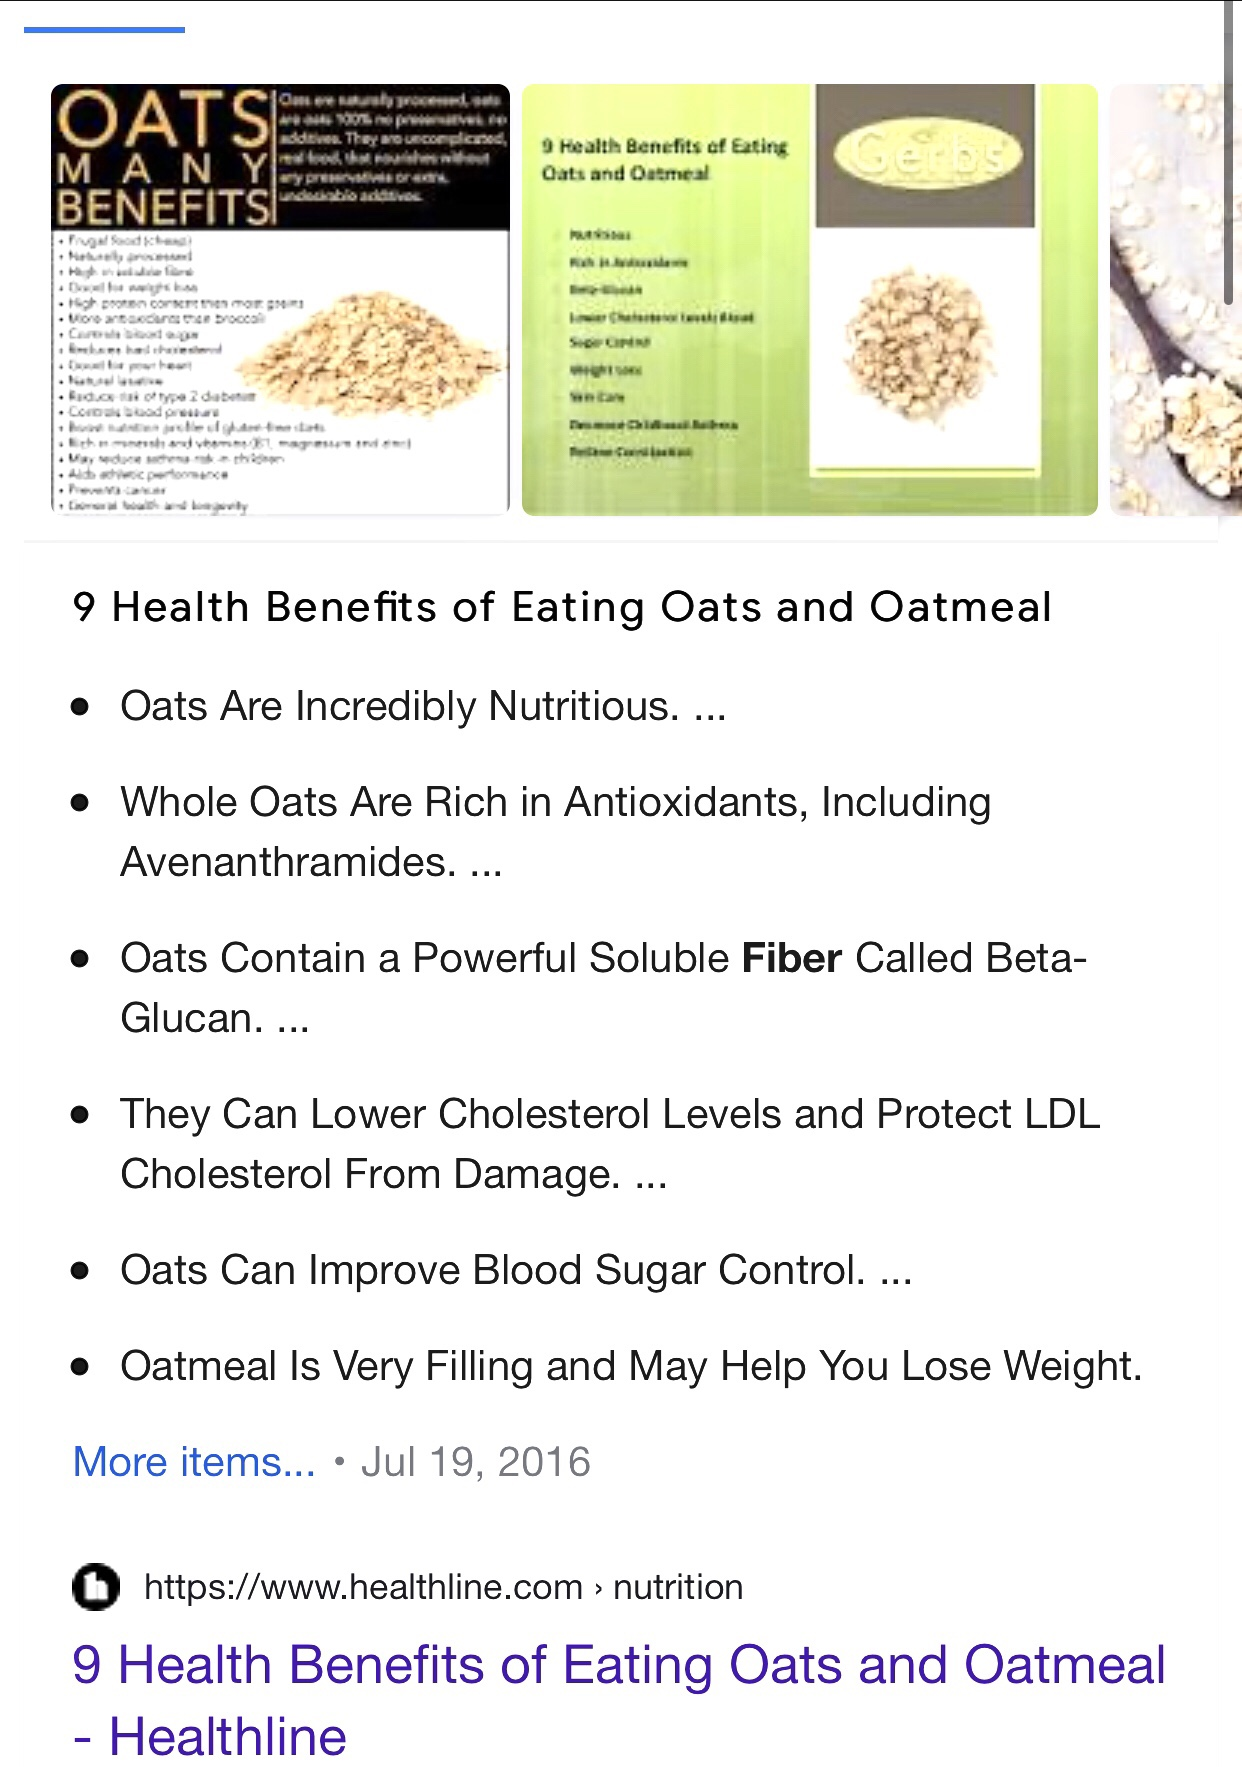 Information on oats benefit